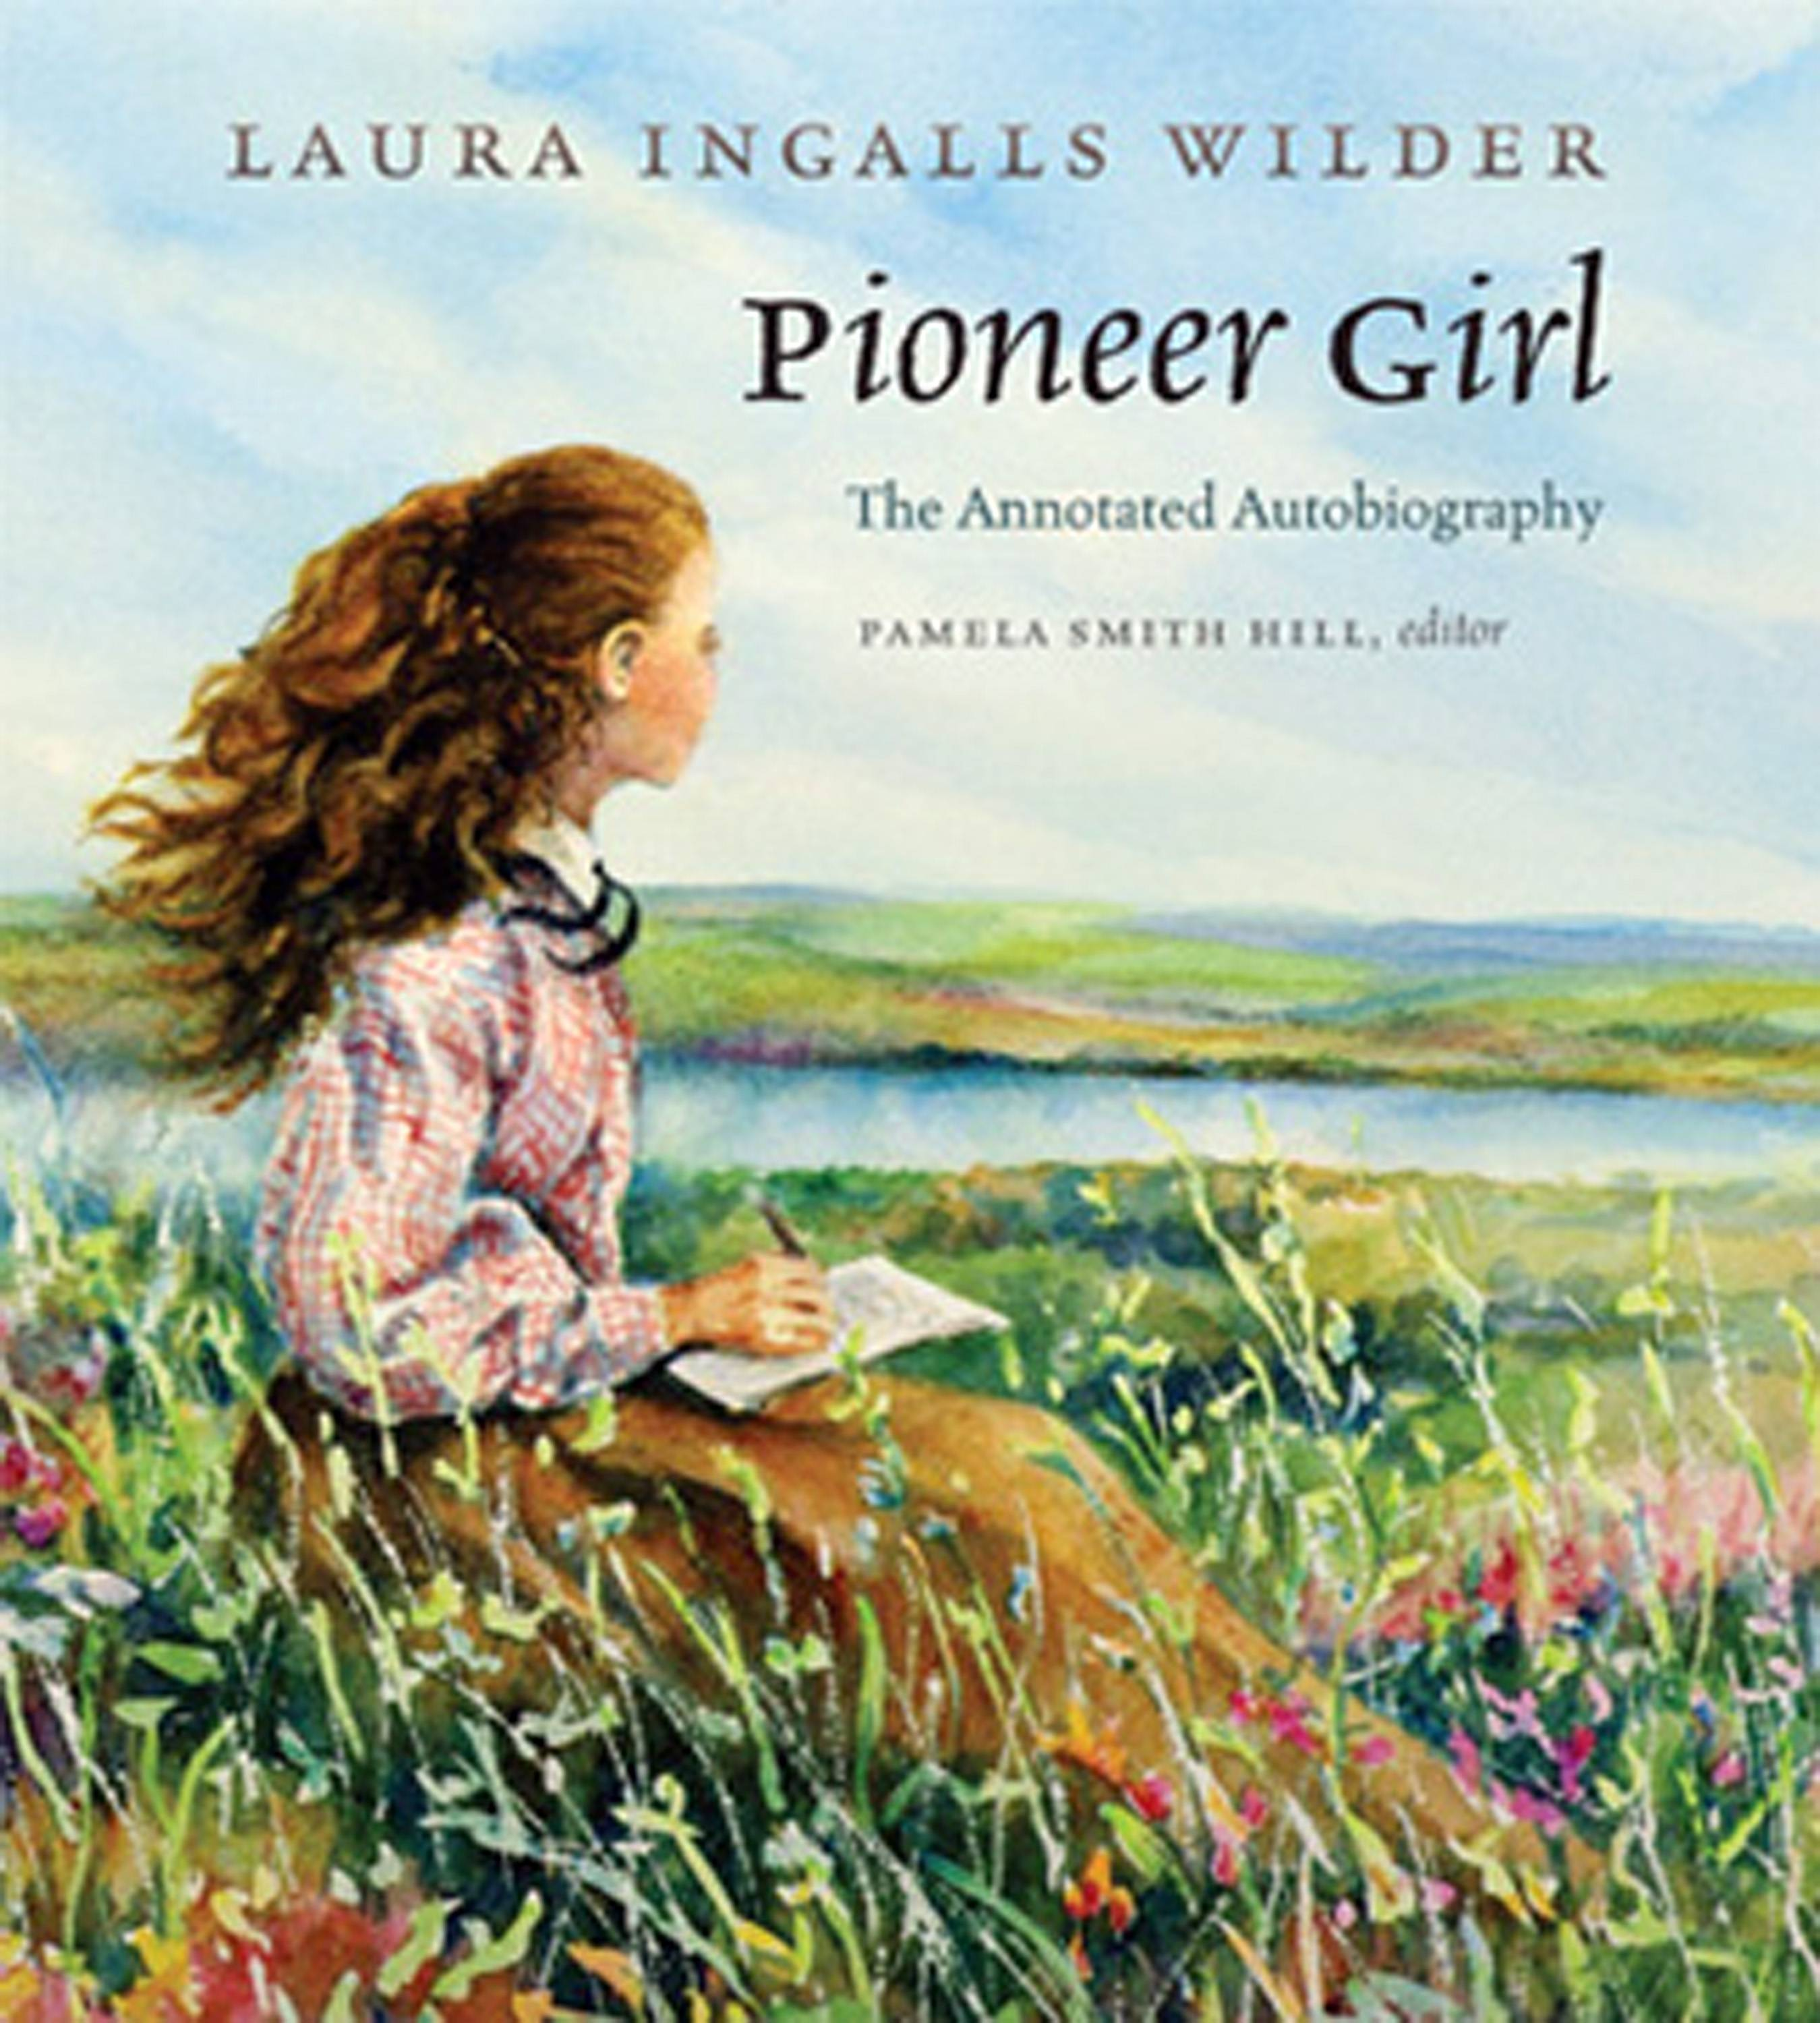 "This fall, the South Dakota State Historical Society Press plans to publish ""Pioneer Girl: The Annotated Autobiography,"" which was the original version of the autobiography that Laura Ingalls Wilder likely wrote in the late 1920s."